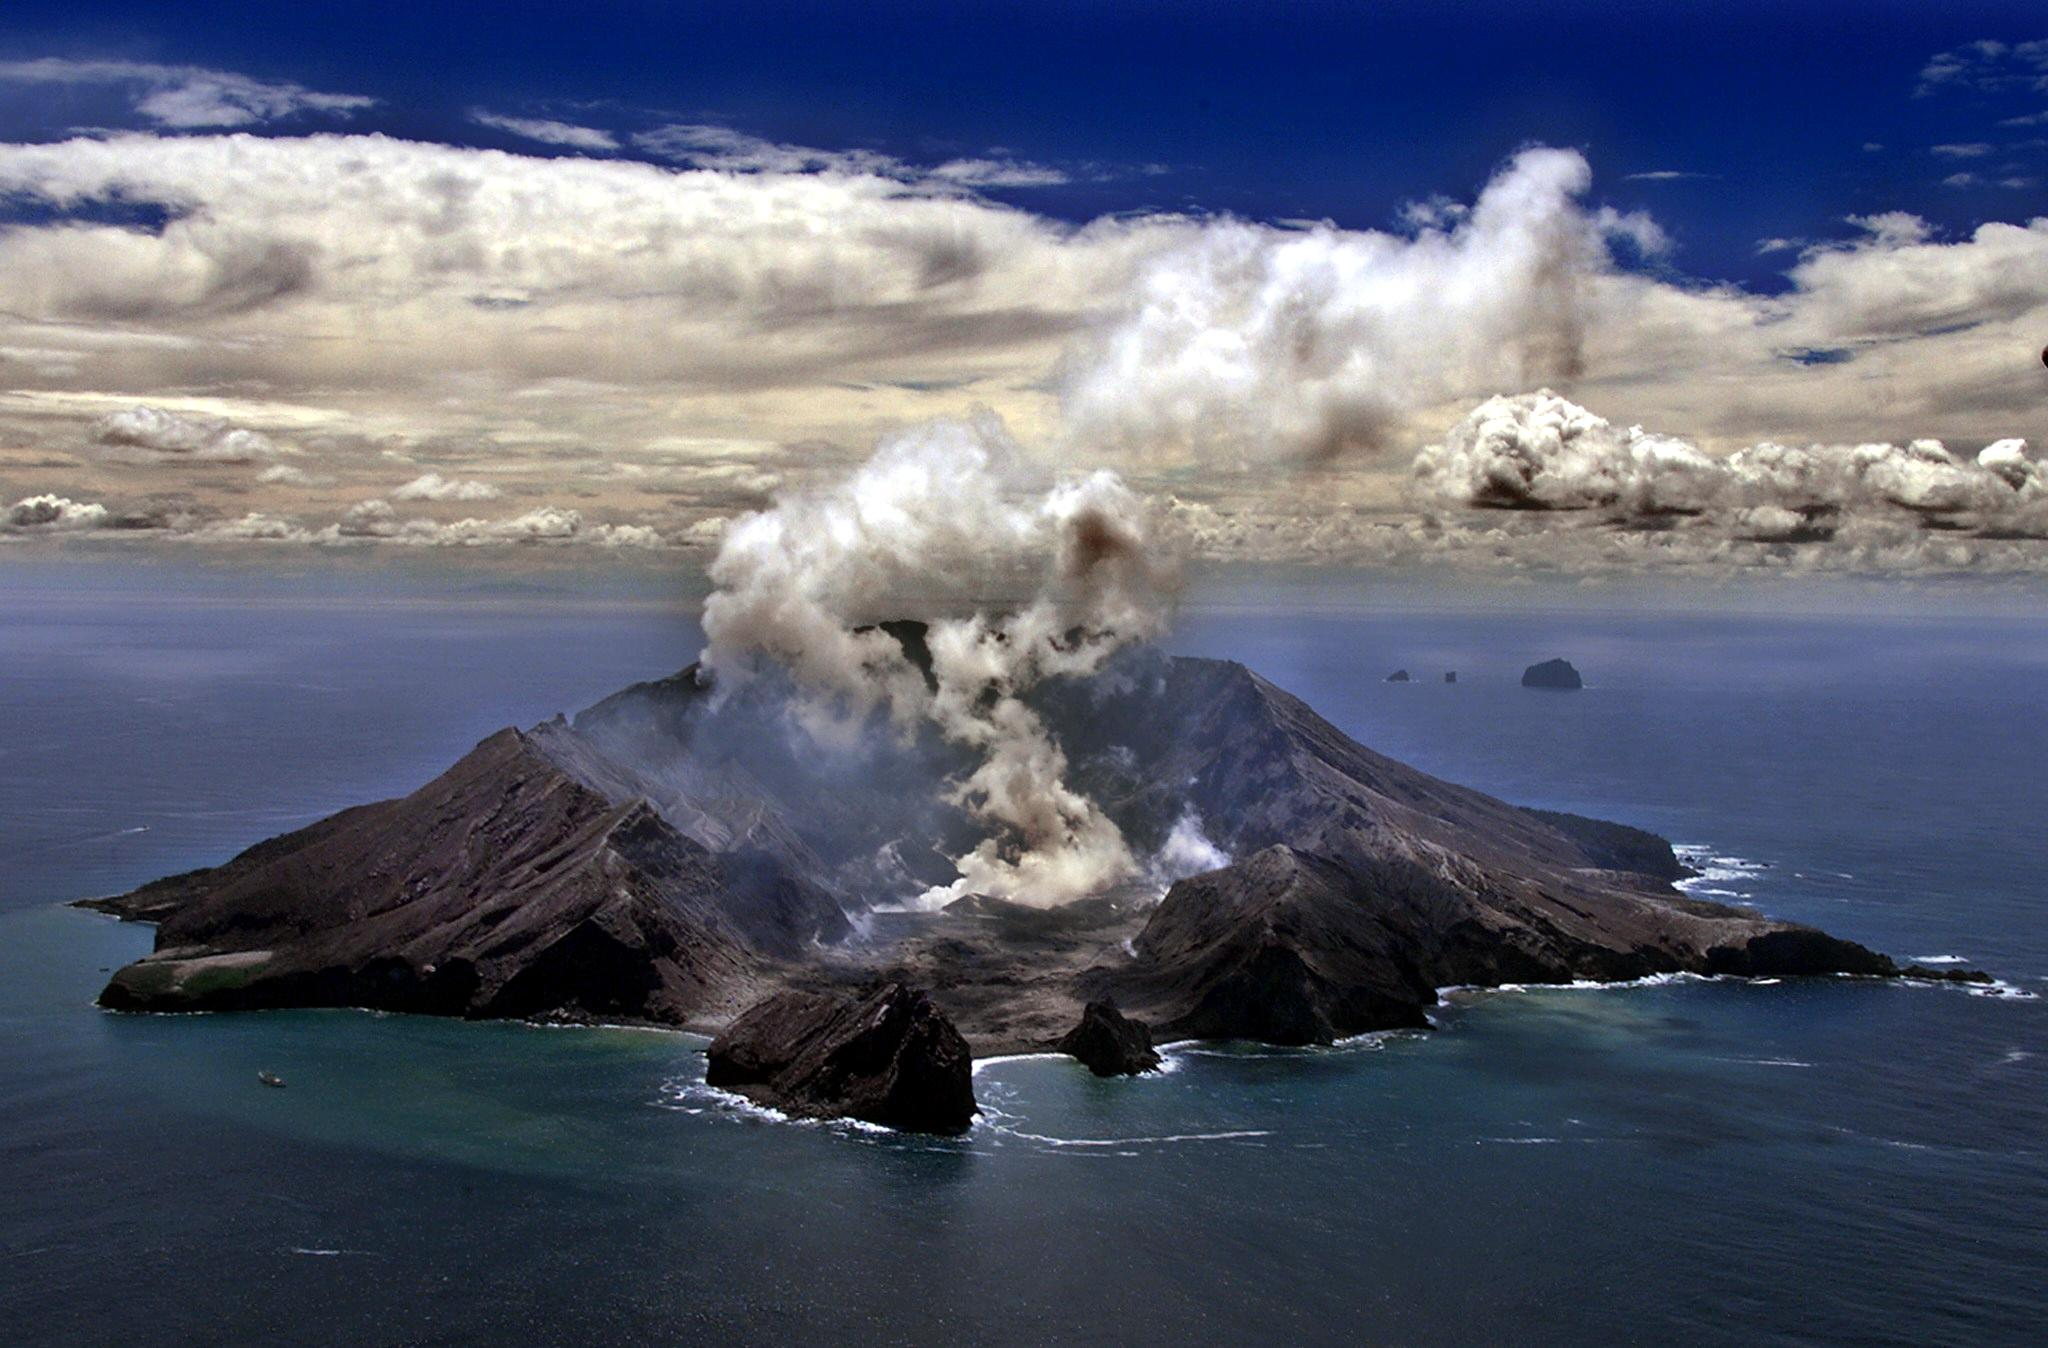 The volcano on White Island pictured in 1999.